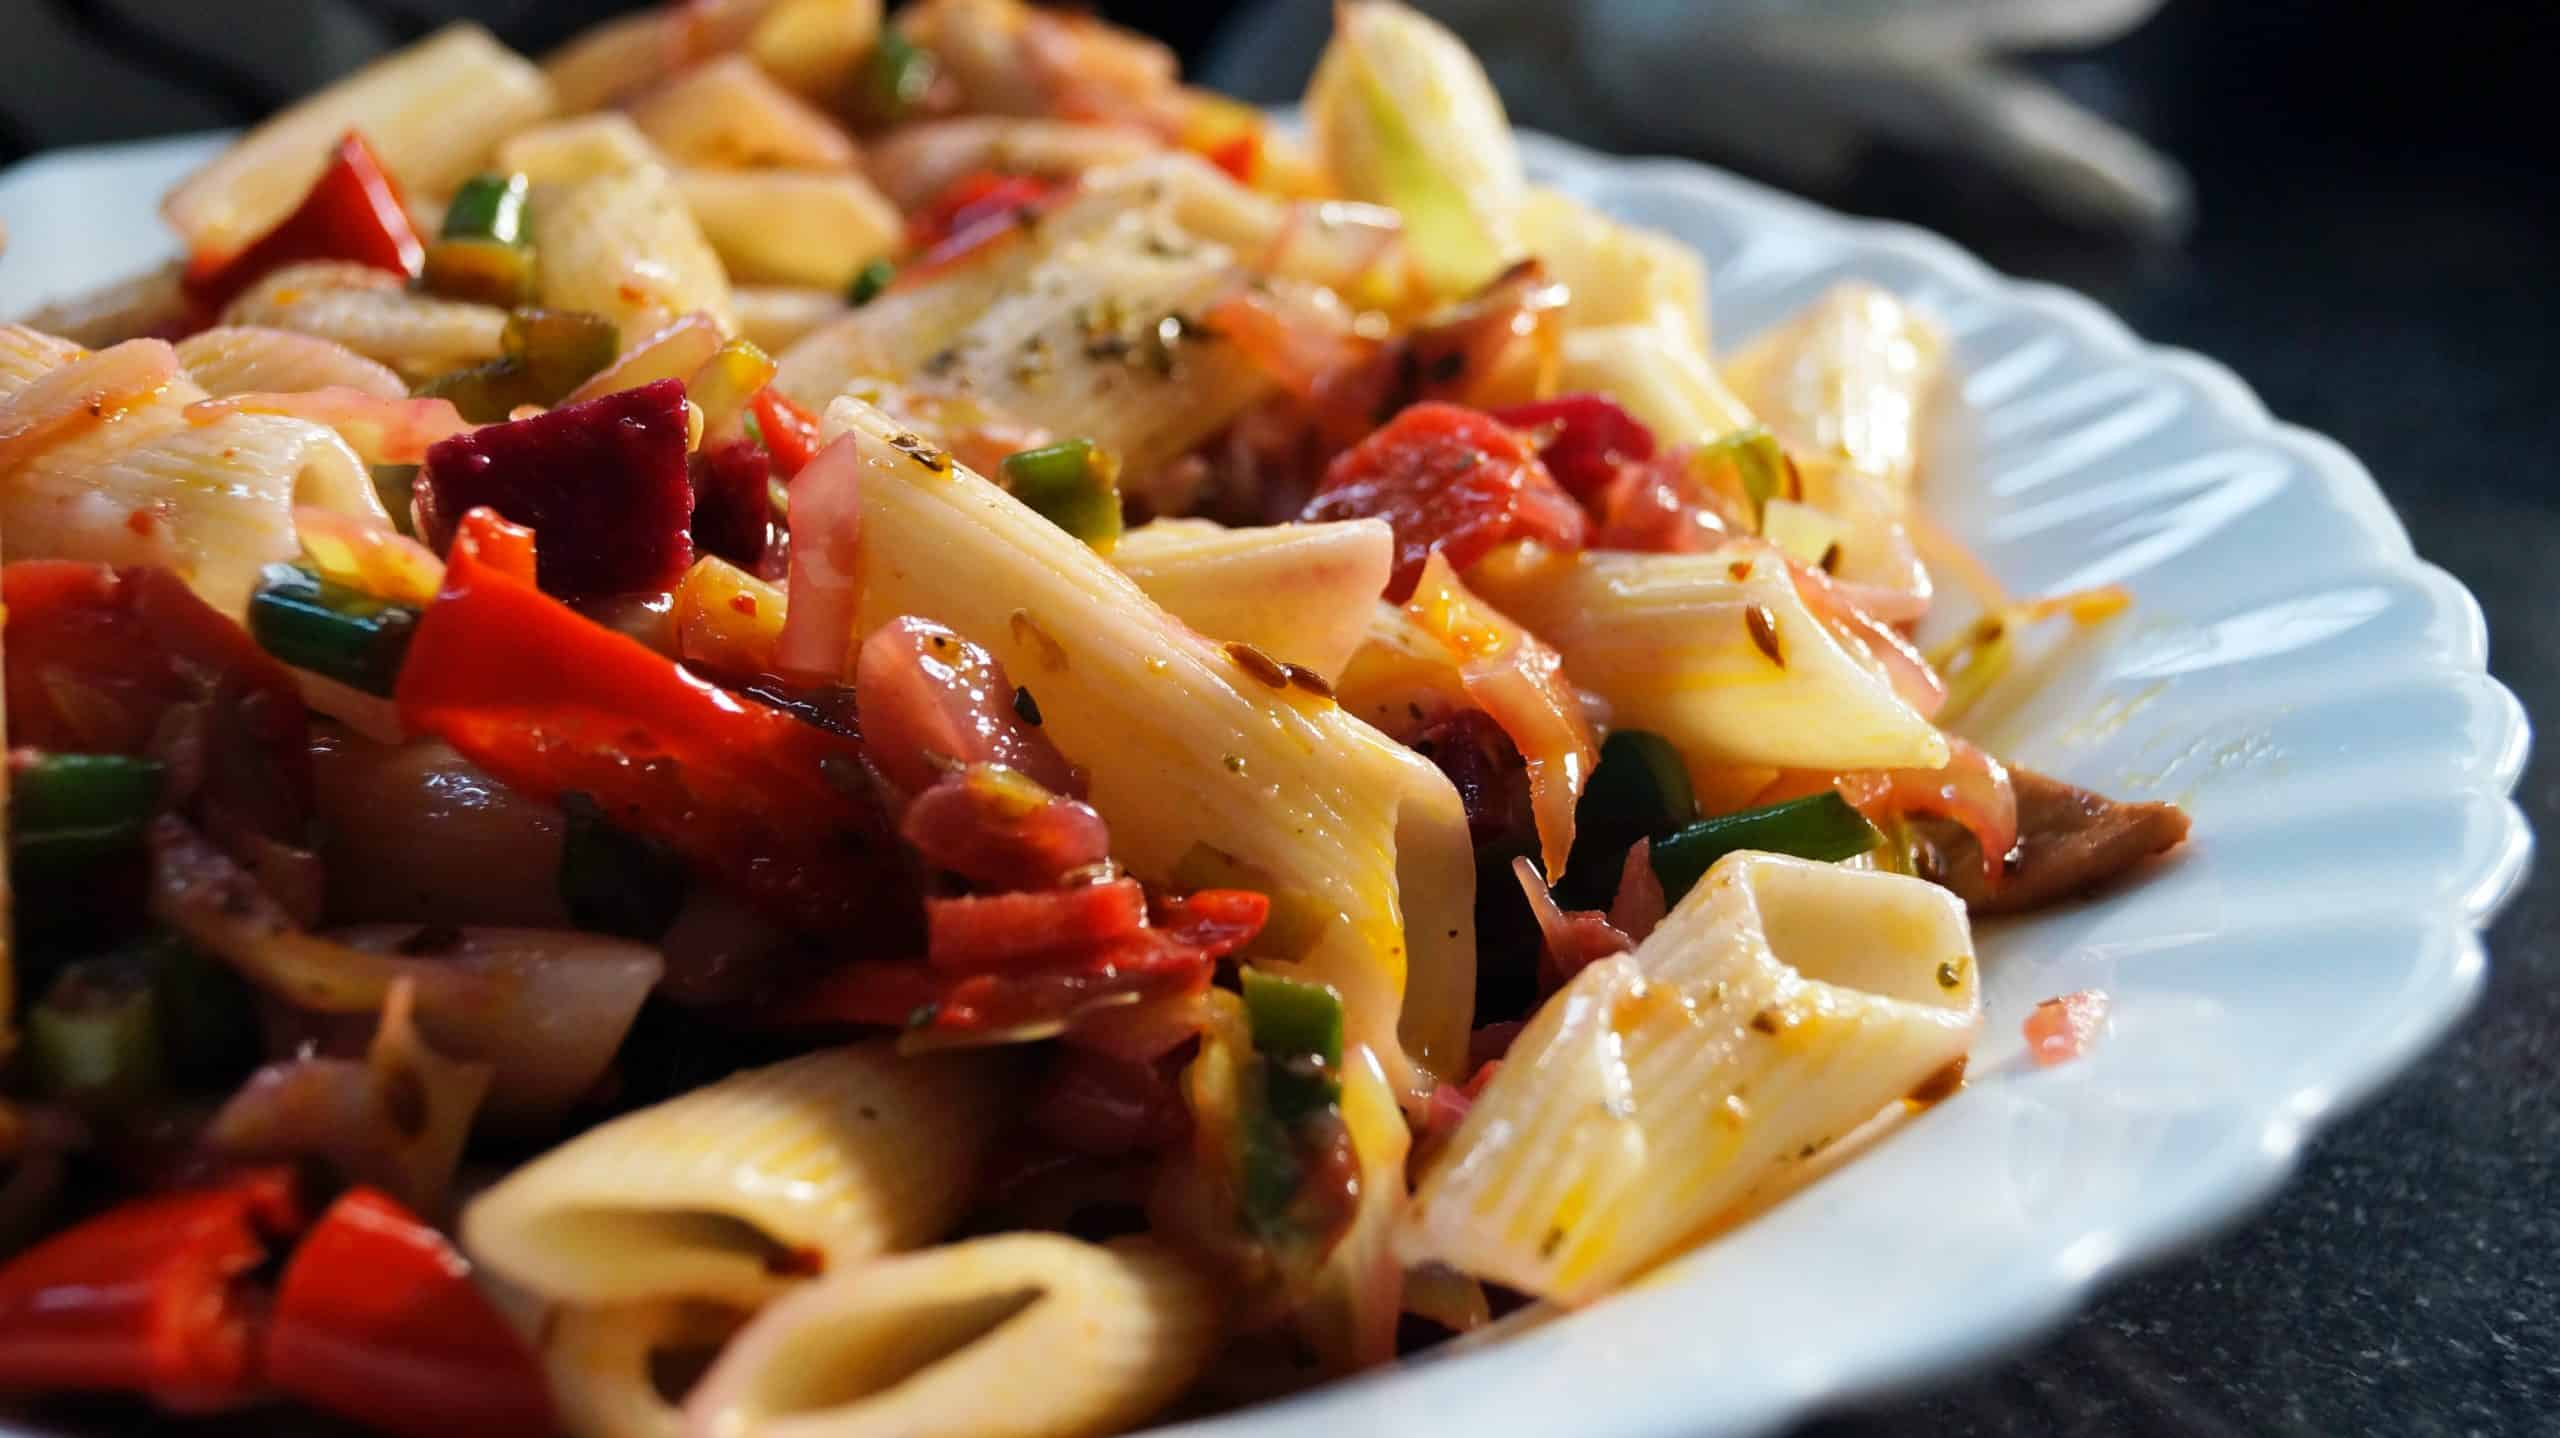 Pasta Salad: Preparing Your Own Healthy Meal